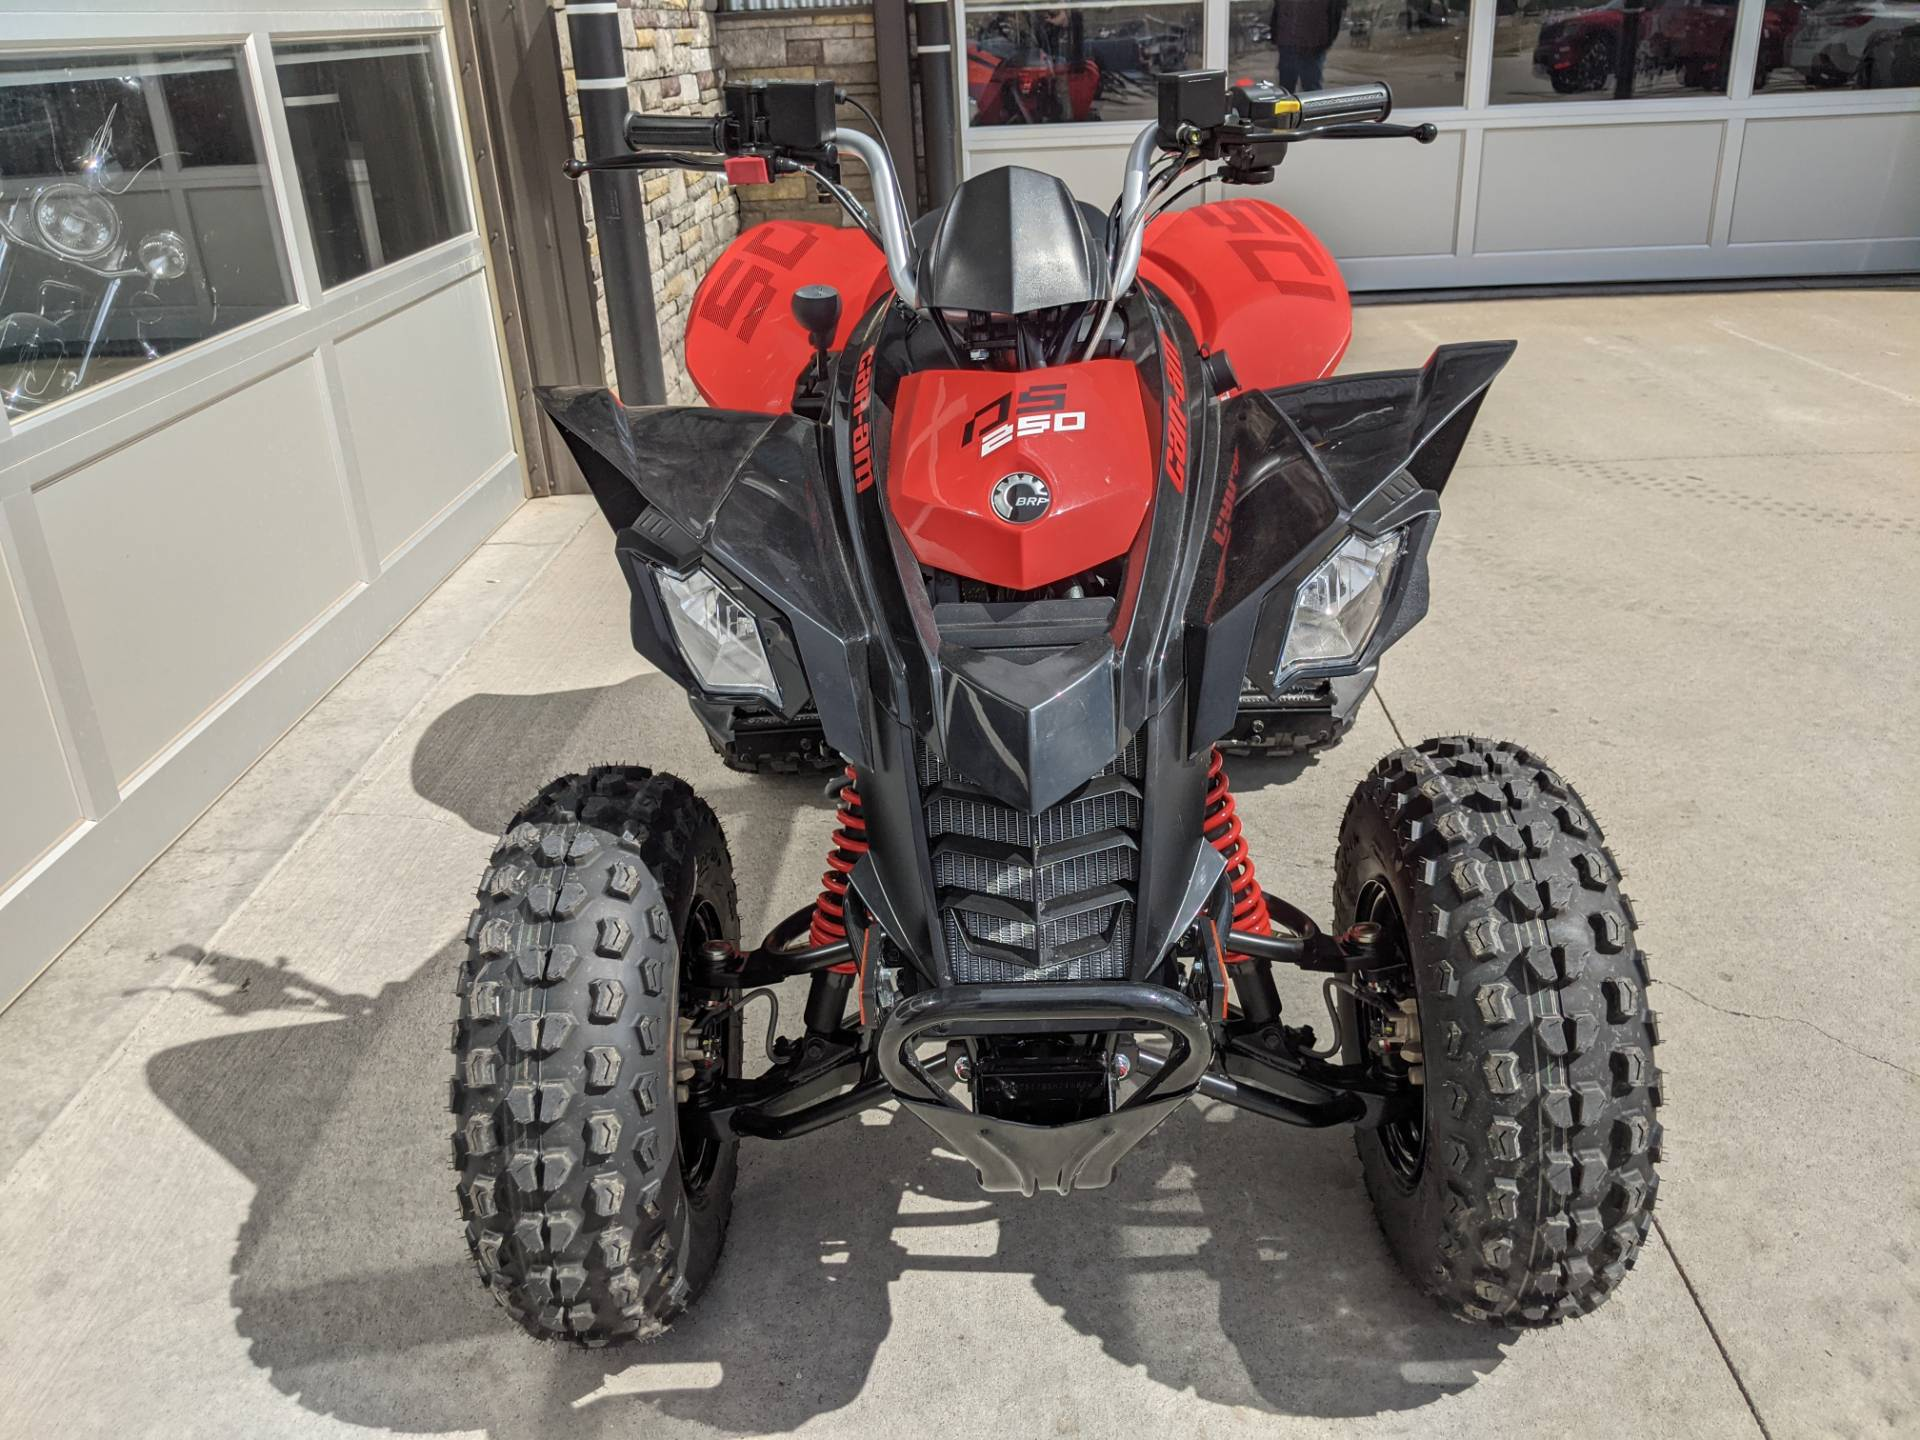 2021 Can-Am DS 250 in Rapid City, South Dakota - Photo 5